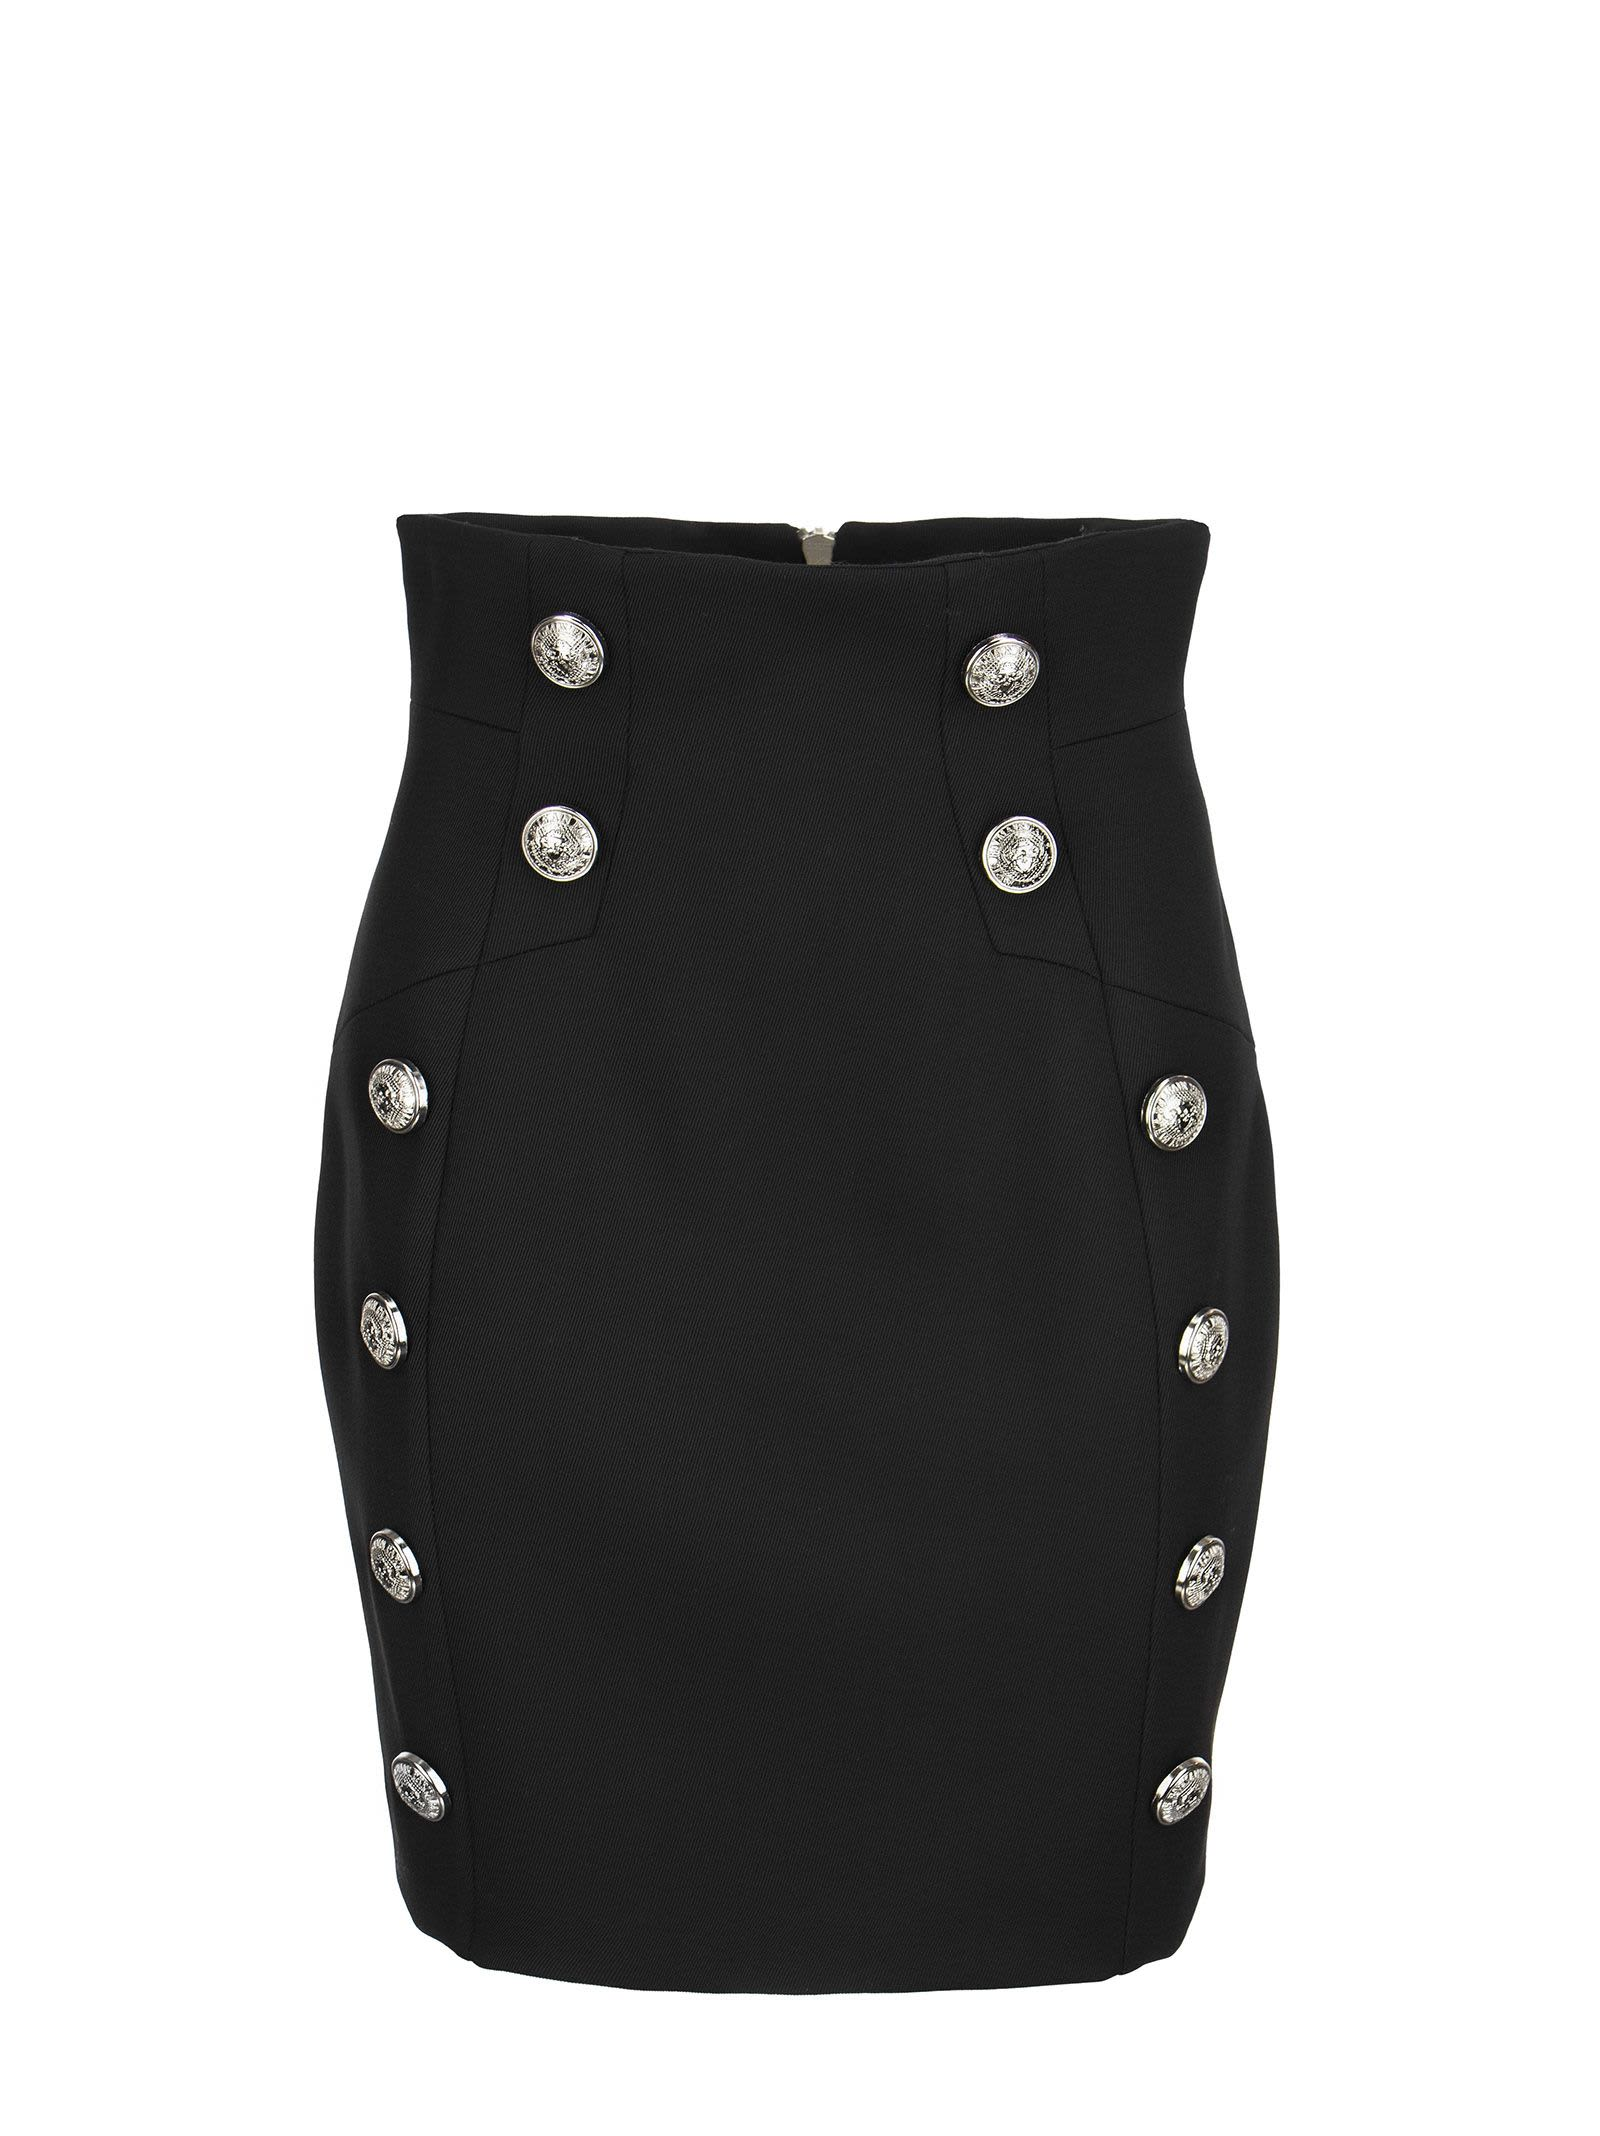 Balmain Short Black Skirt With Double Button